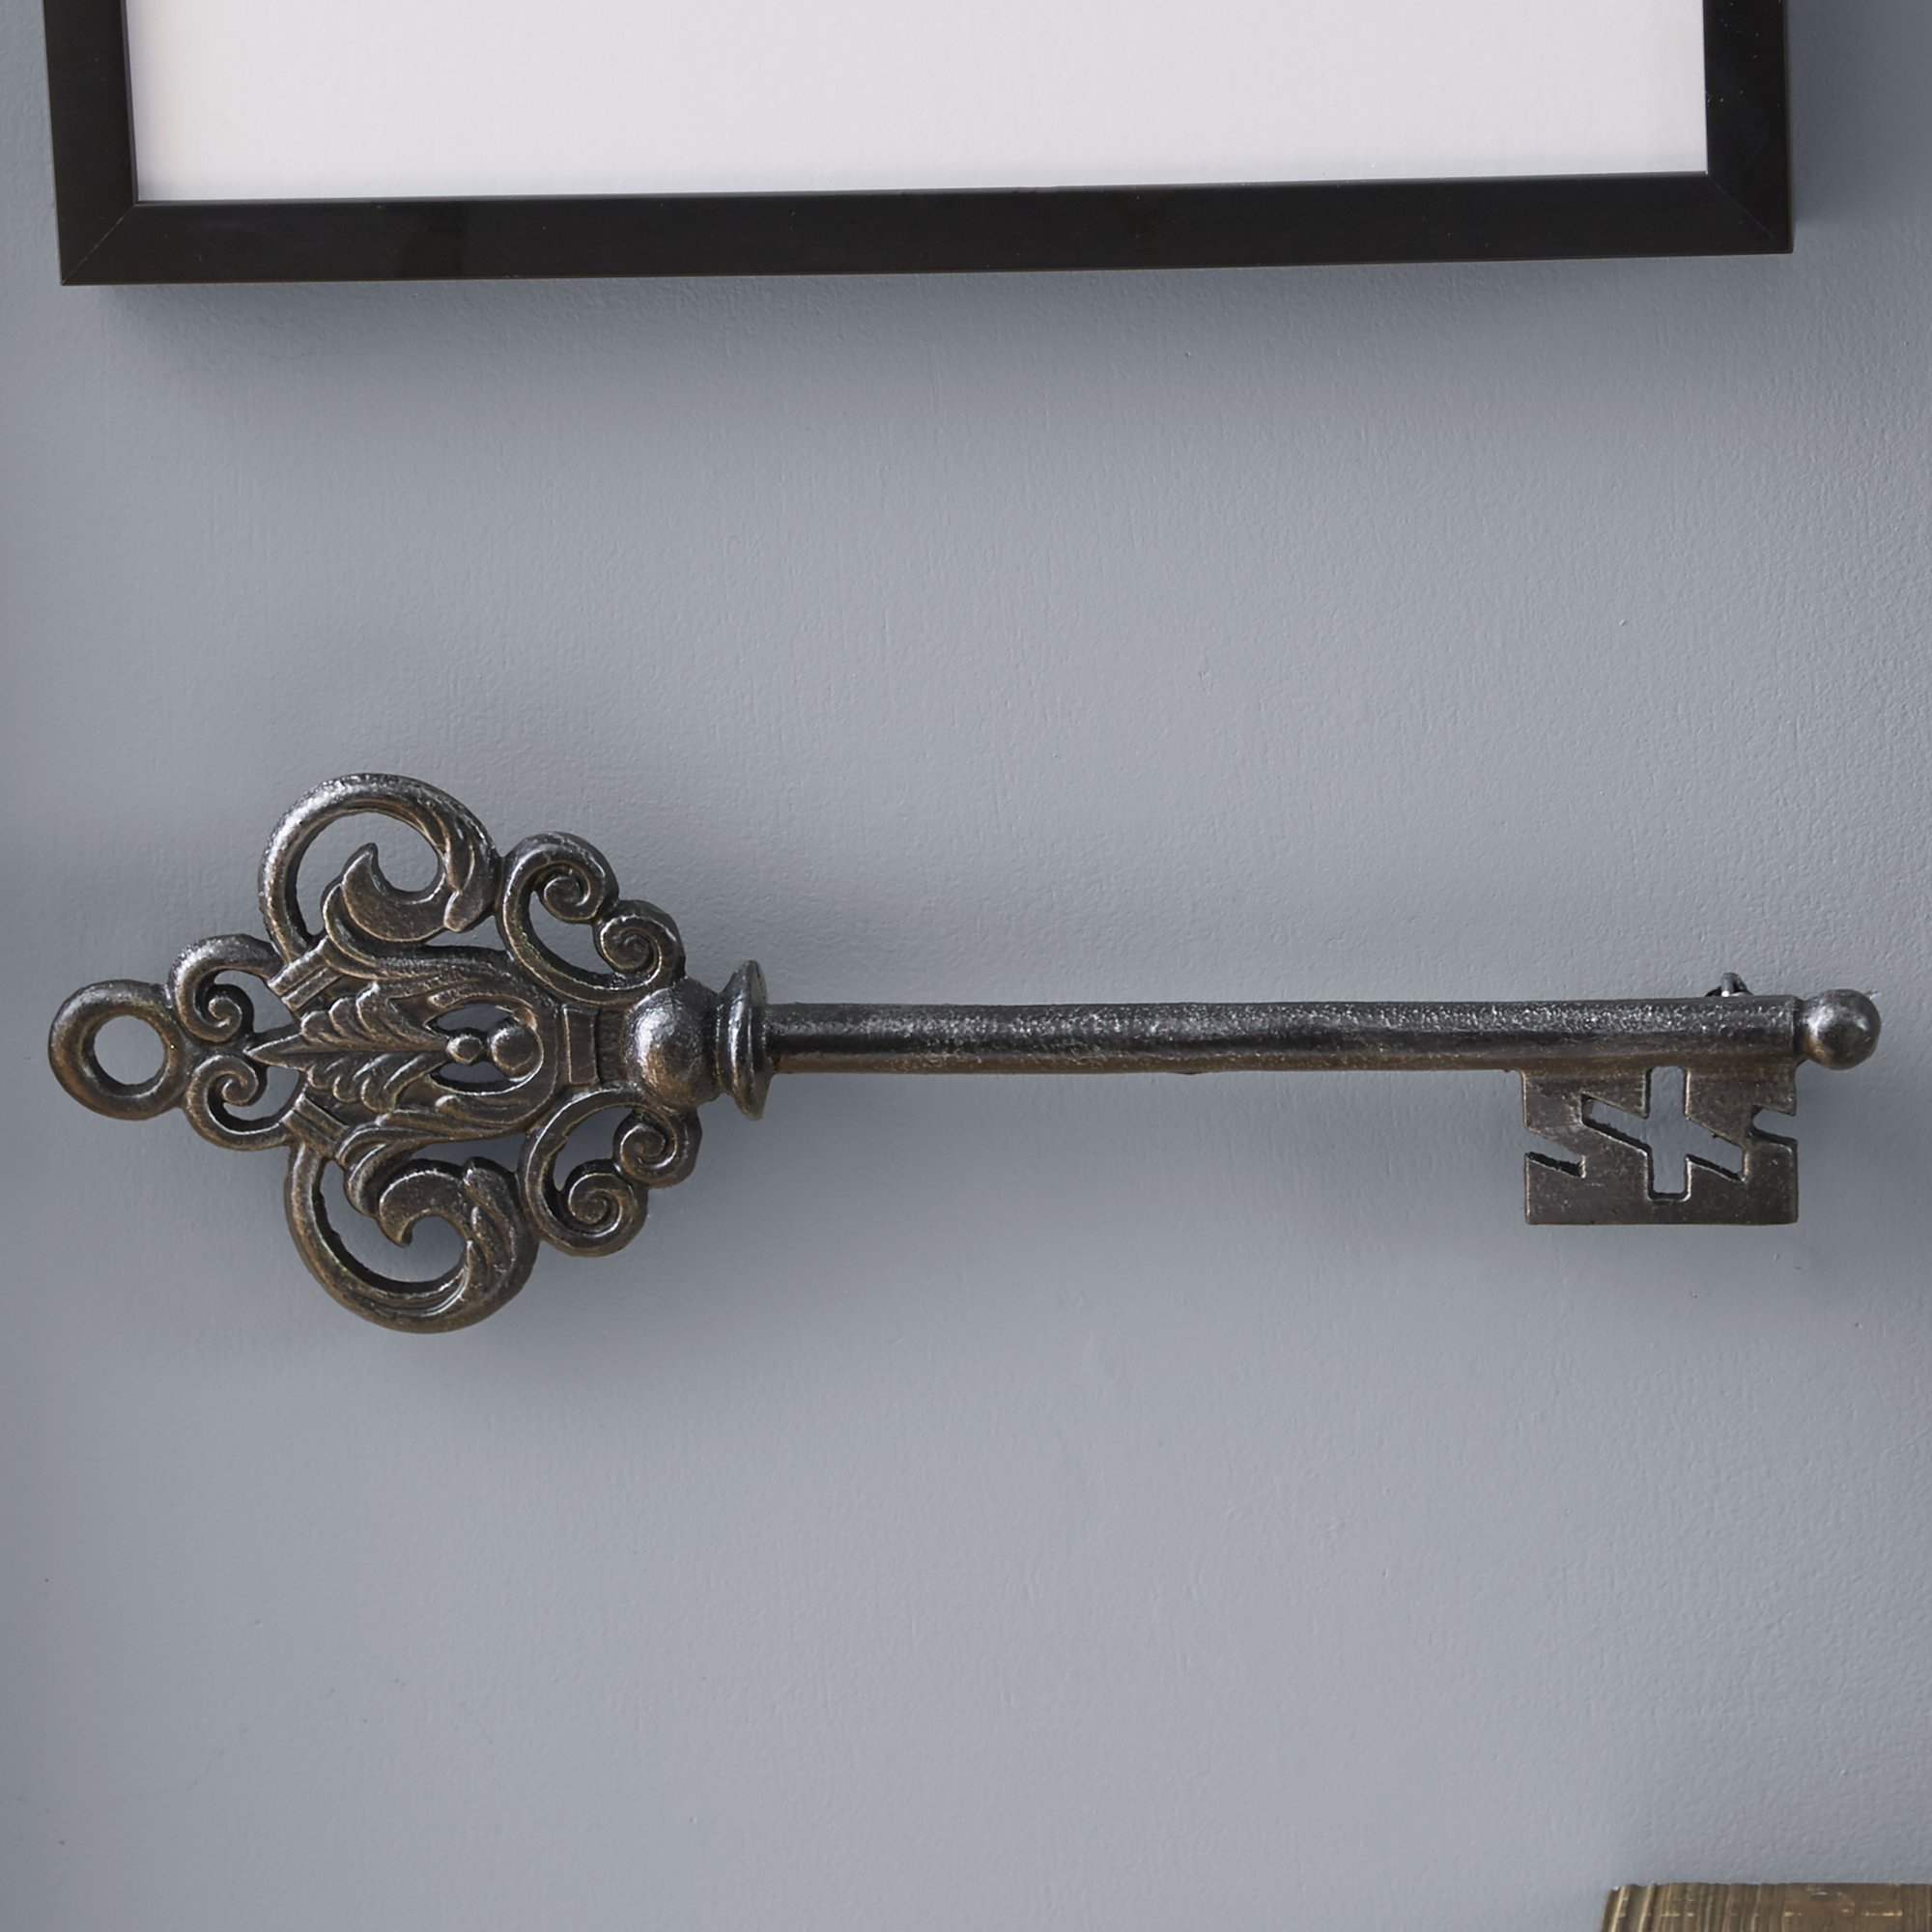 Metal Key Wall Decor – Pmpresssecretariat For Most Current Black Metal Key Wall Decor (View 2 of 20)